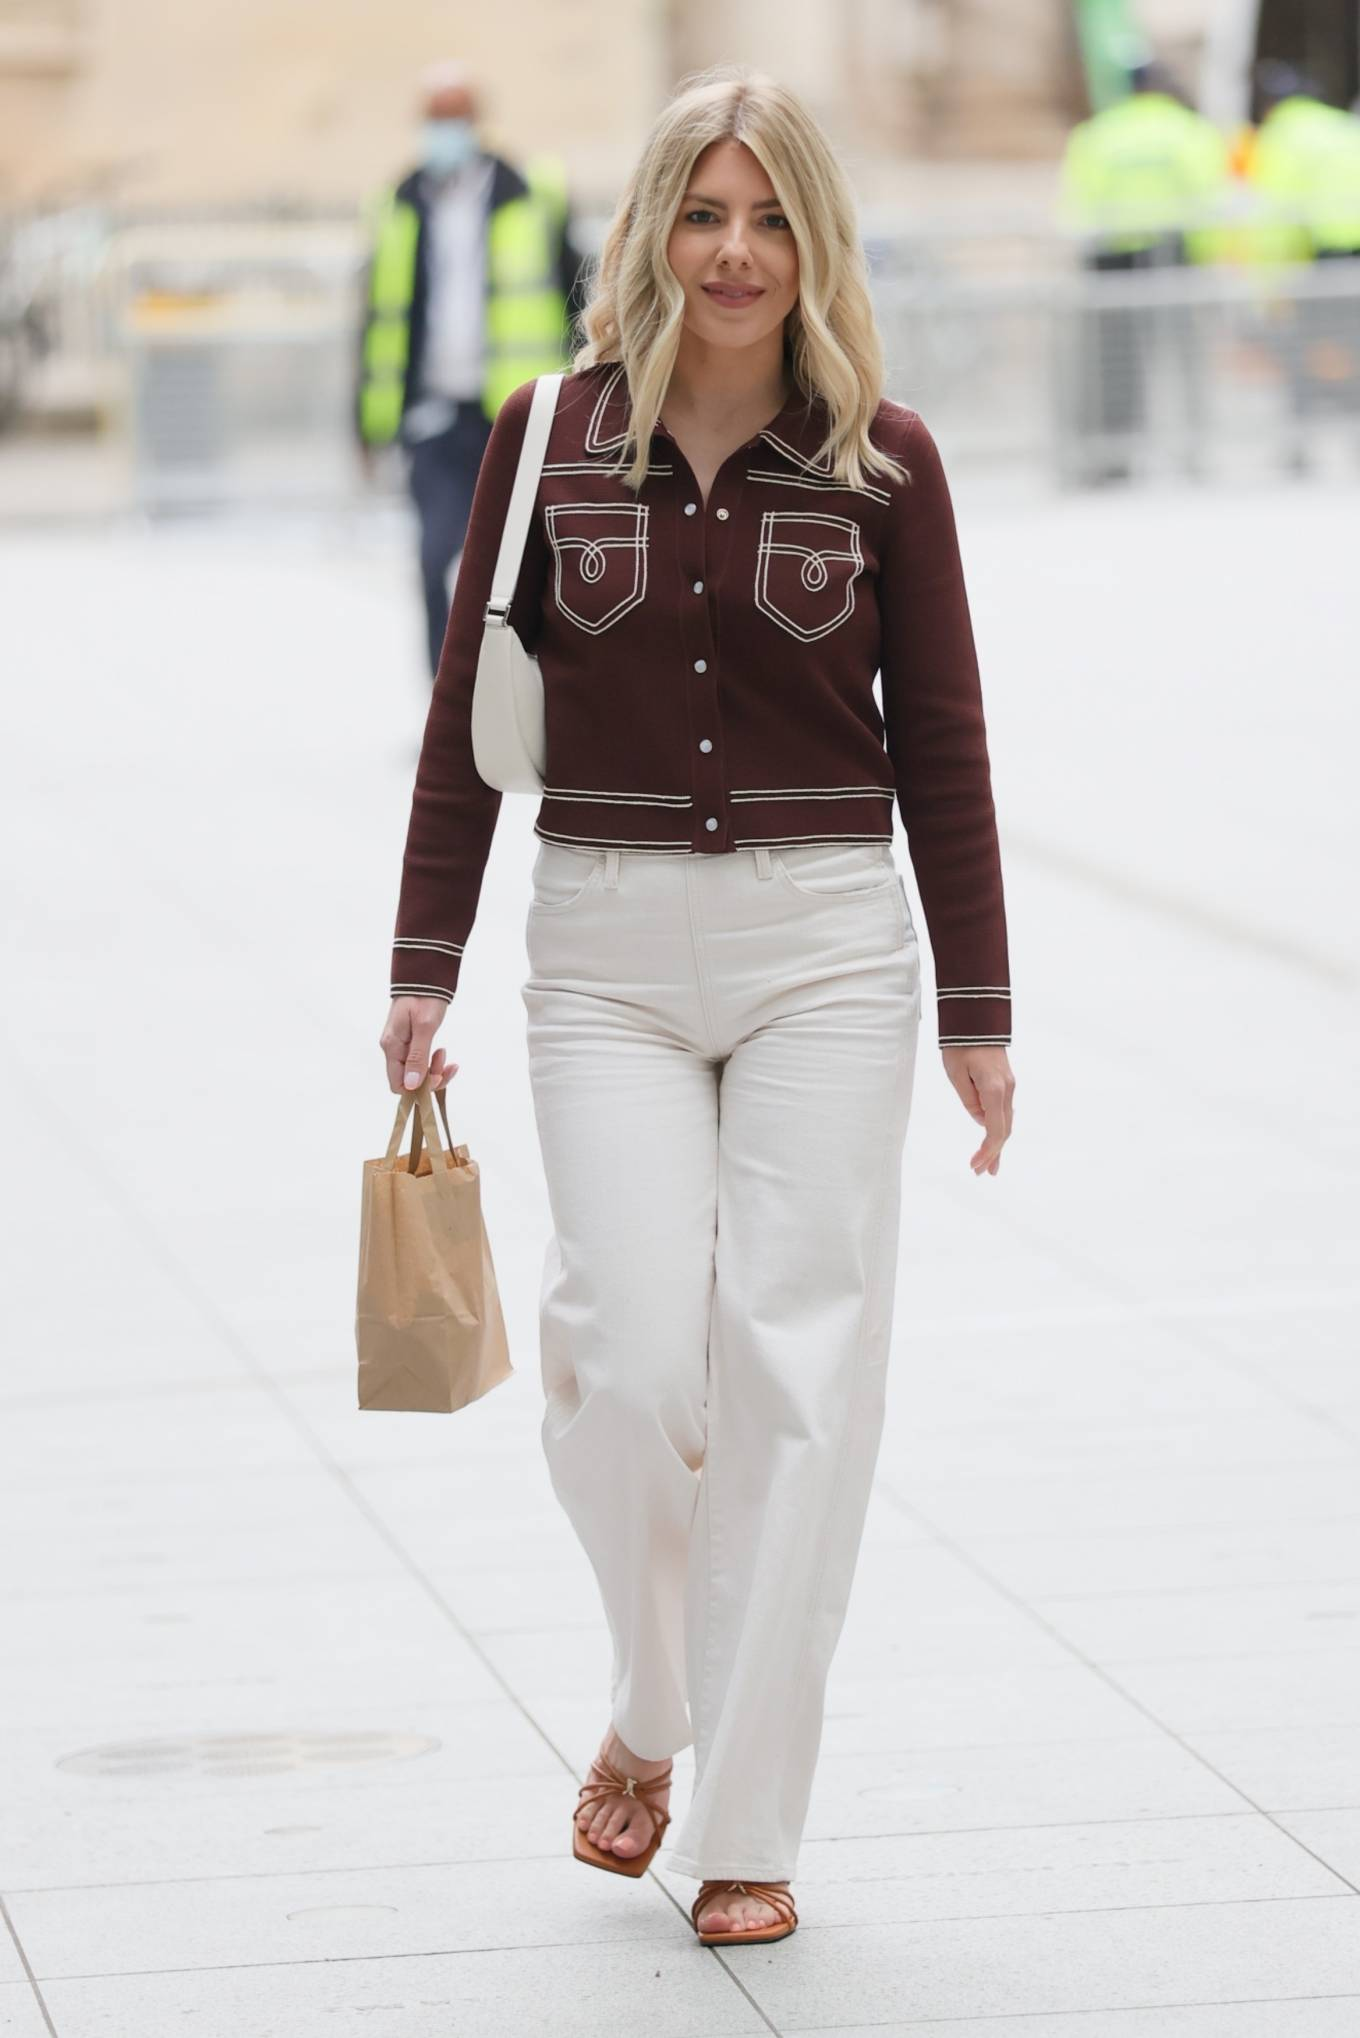 Mollie King - arrives at the BBC studios in London